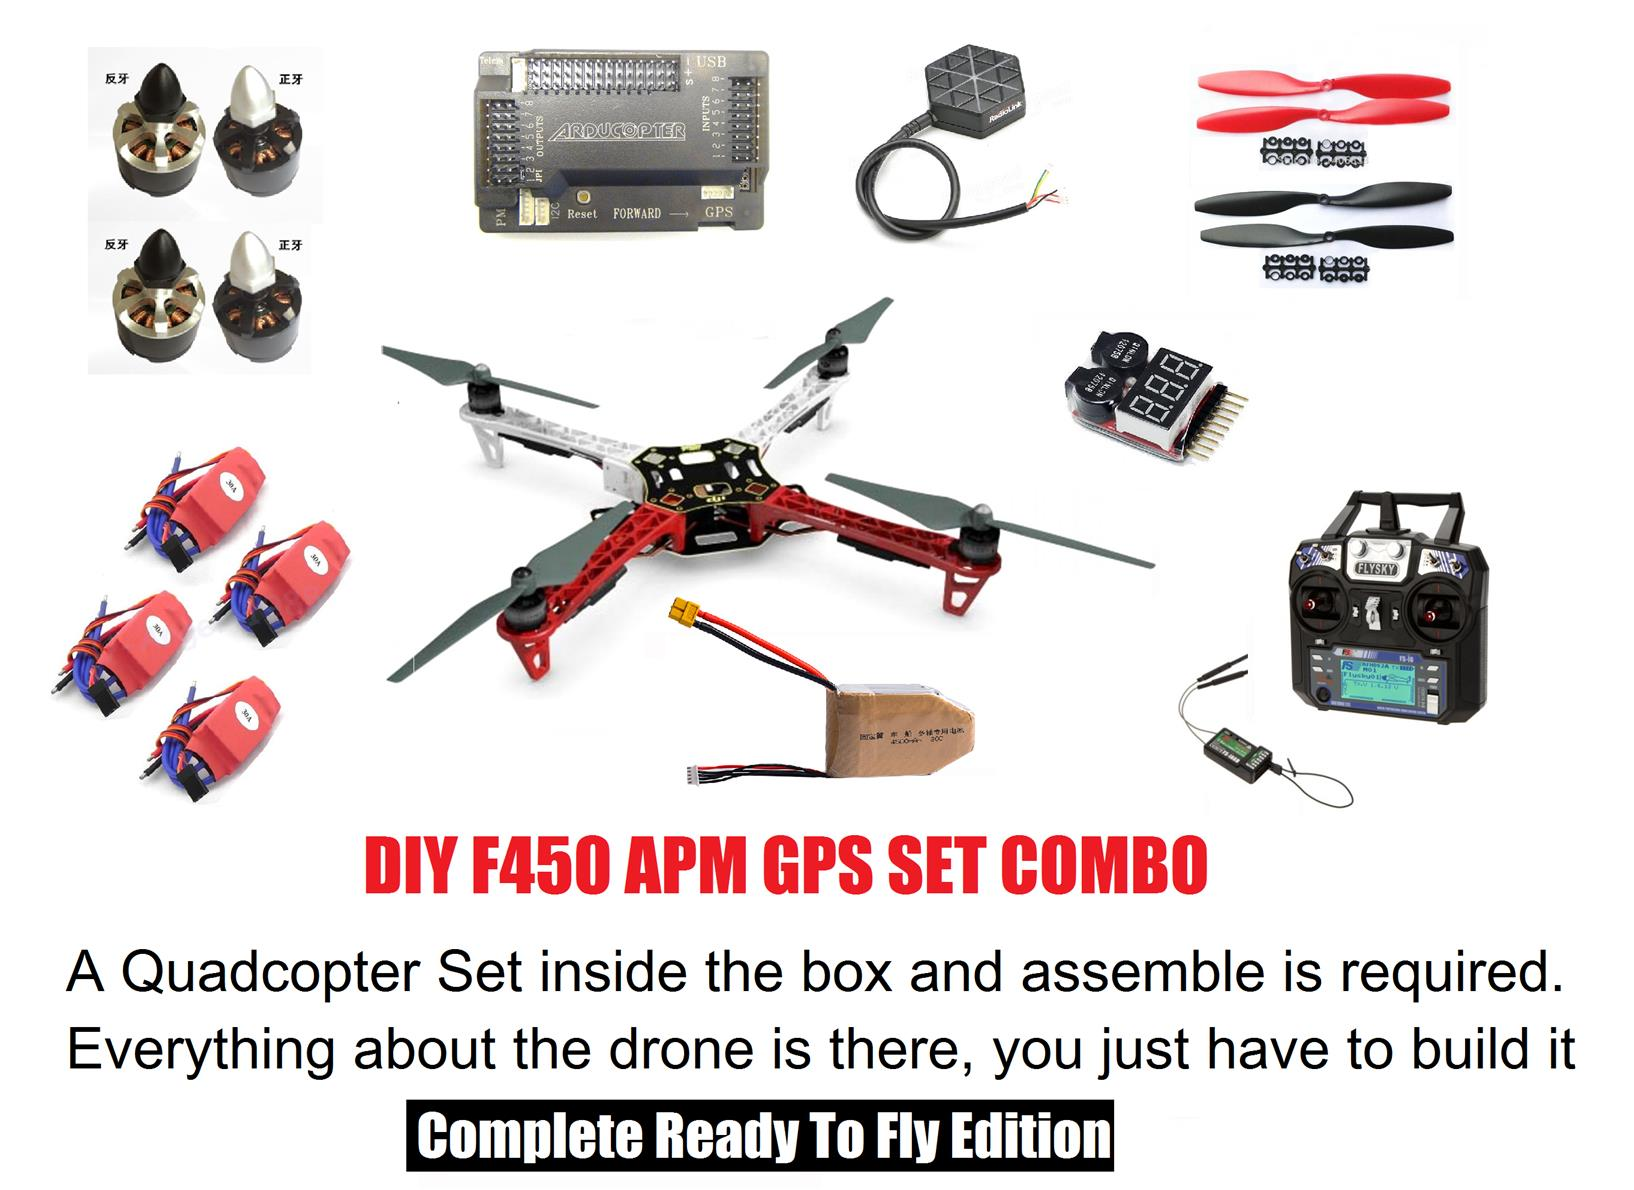 Diy Drone F450 Quadcopter With Apm End 9 26 2019 1115 Am Flamewheel Wiring Diagram Gps System Complete Combo